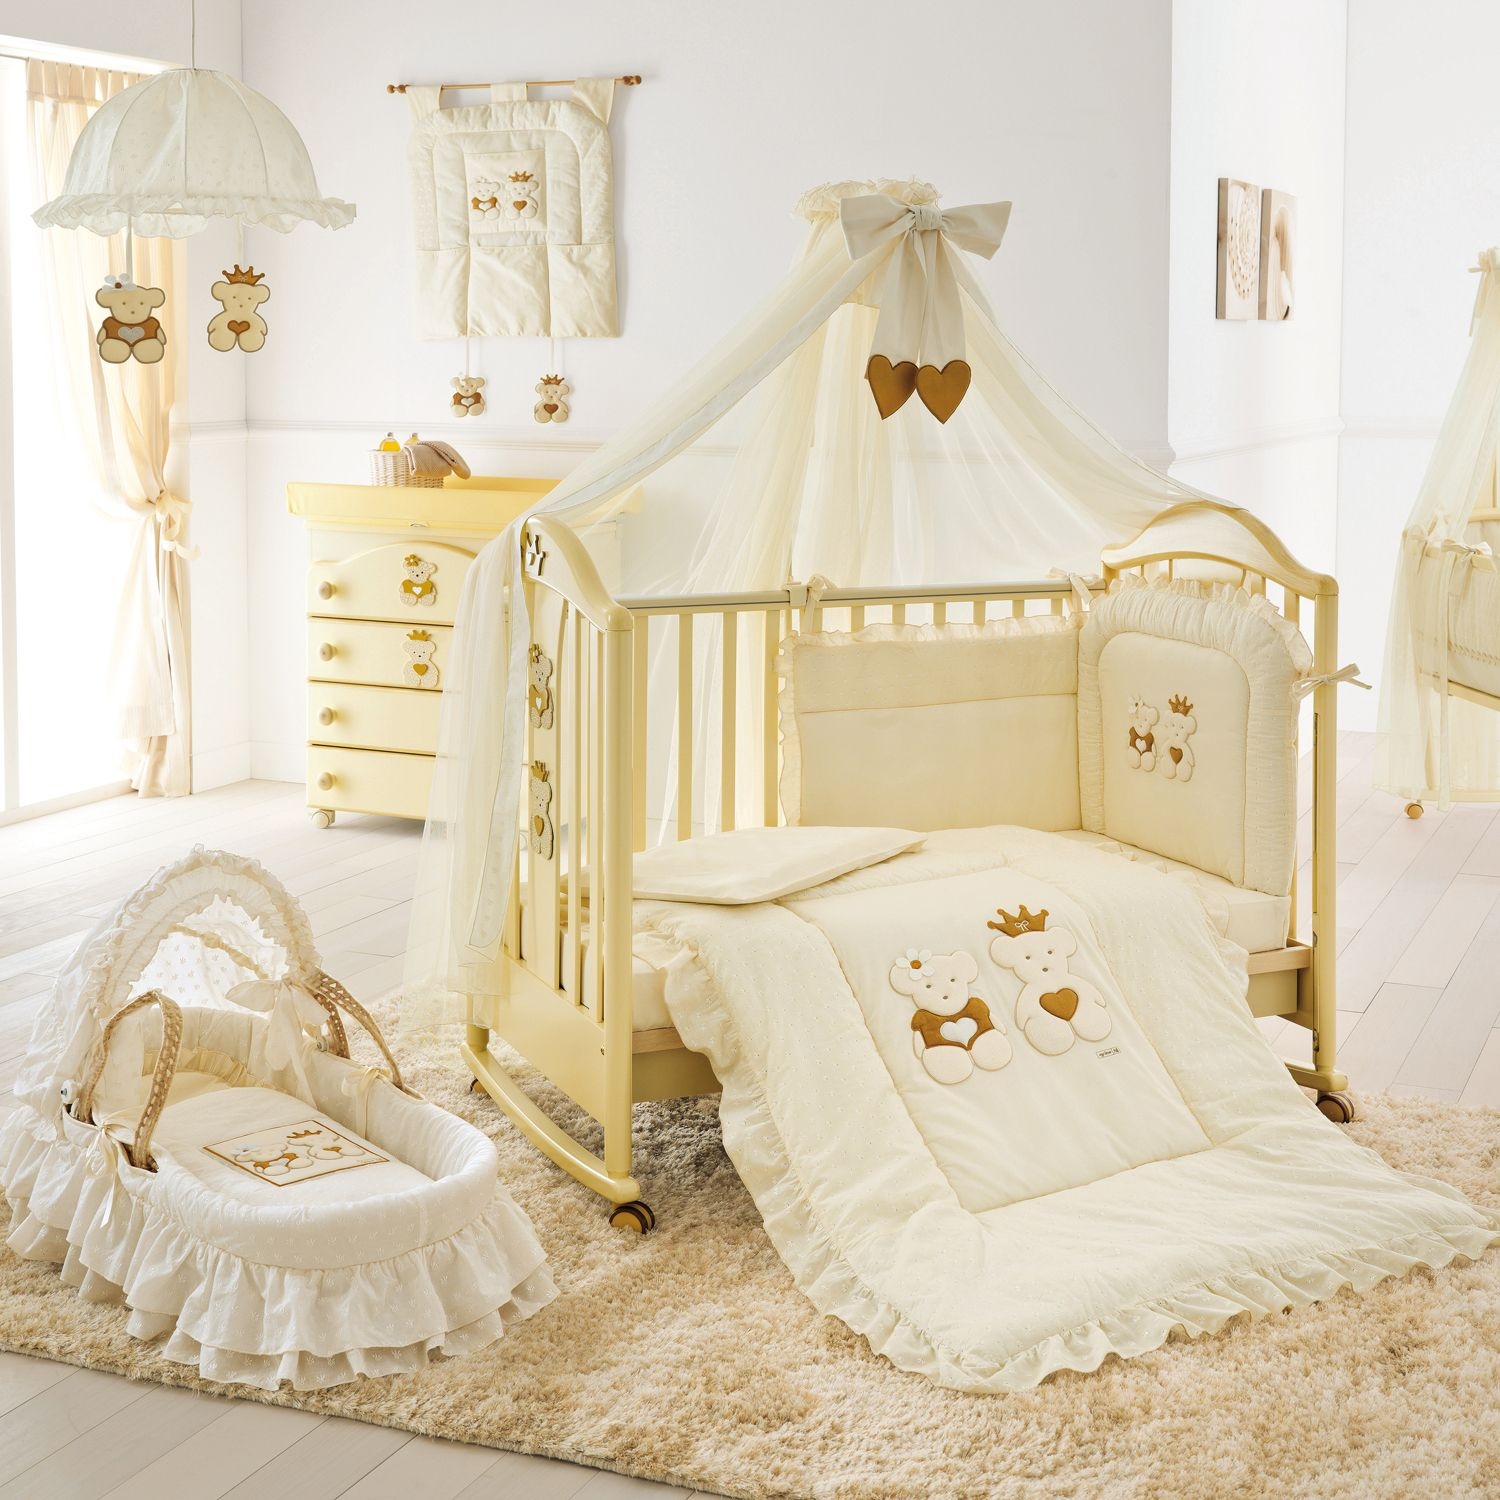 besonderes babyzimmer aus italien kinderm bel mit kronen und teddyb ren diese kollektion m chte. Black Bedroom Furniture Sets. Home Design Ideas